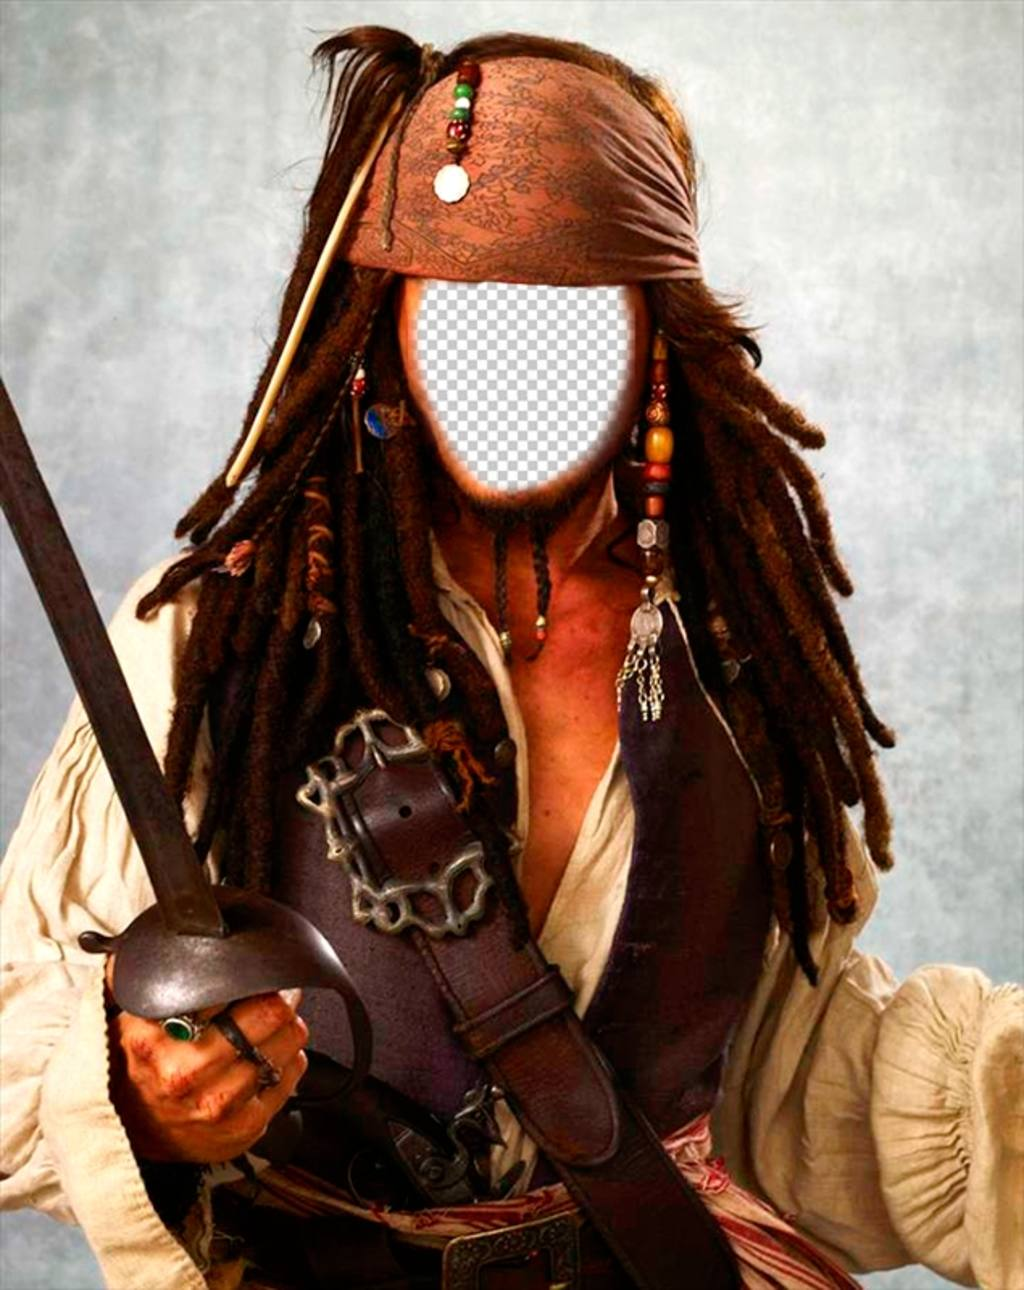 Face in hole of Captain Jack Sparrow